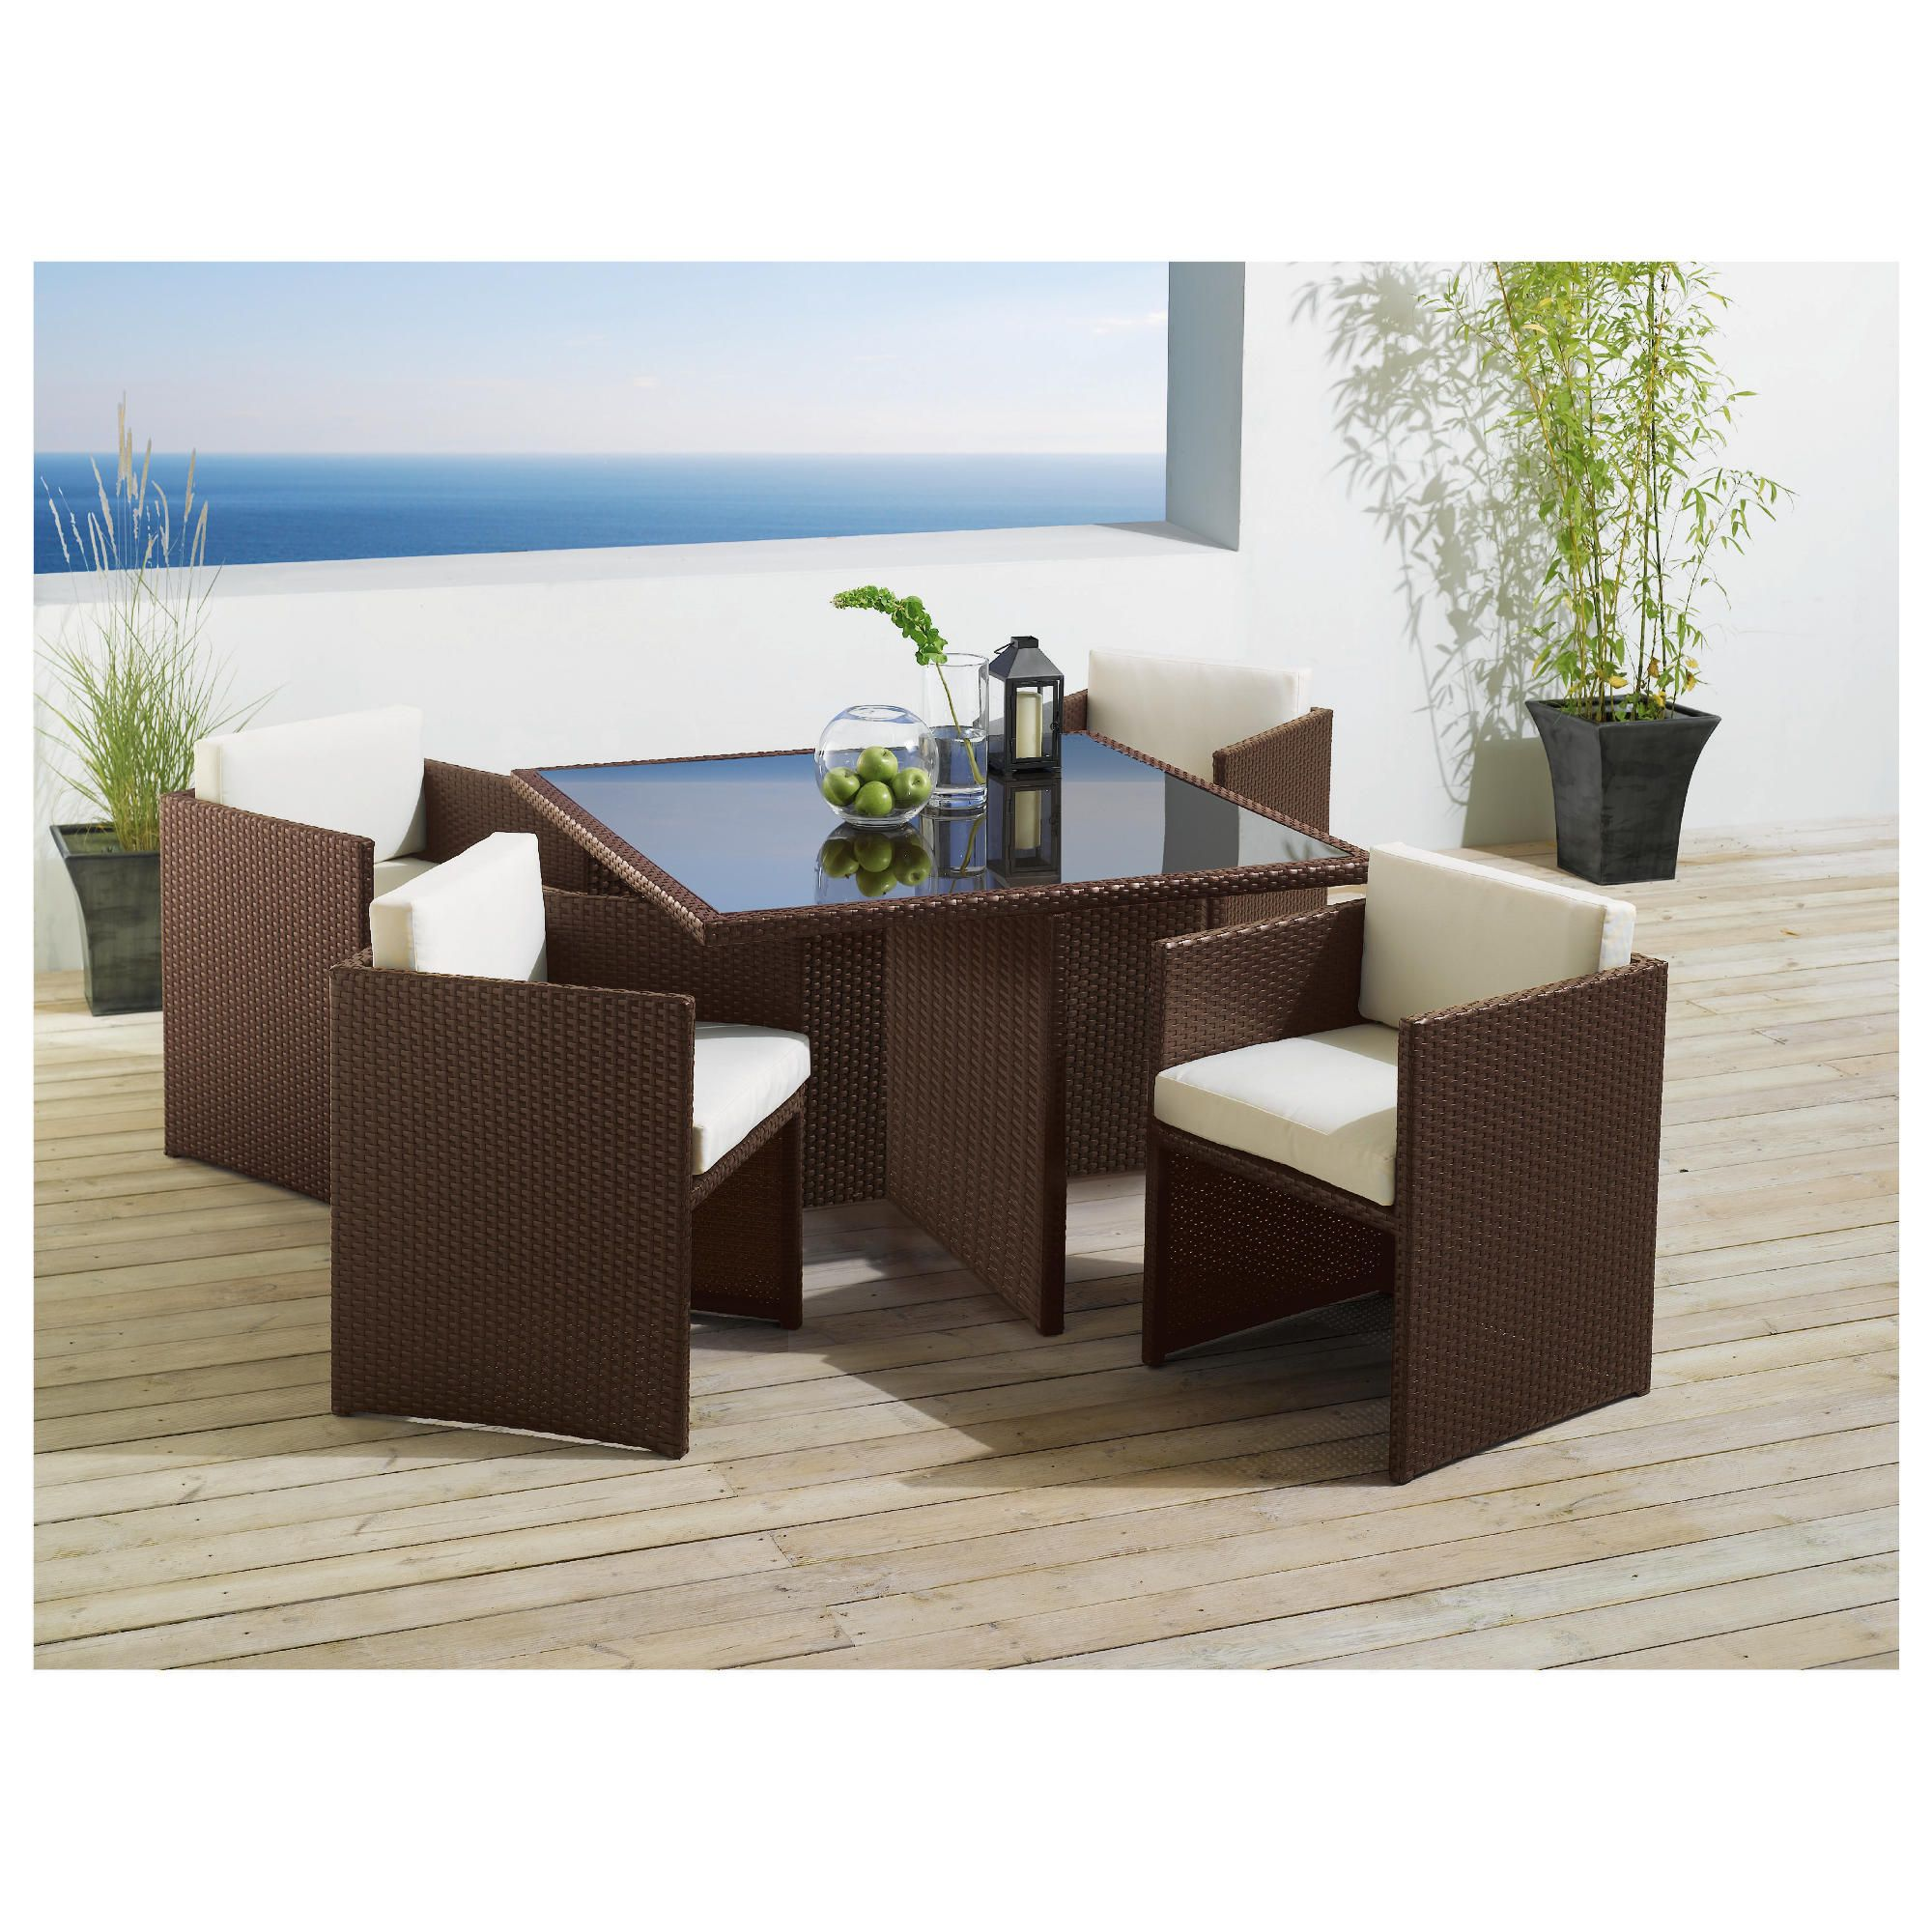 Cuba 4 Seater Hideaway Set, Brown at Tesco Direct